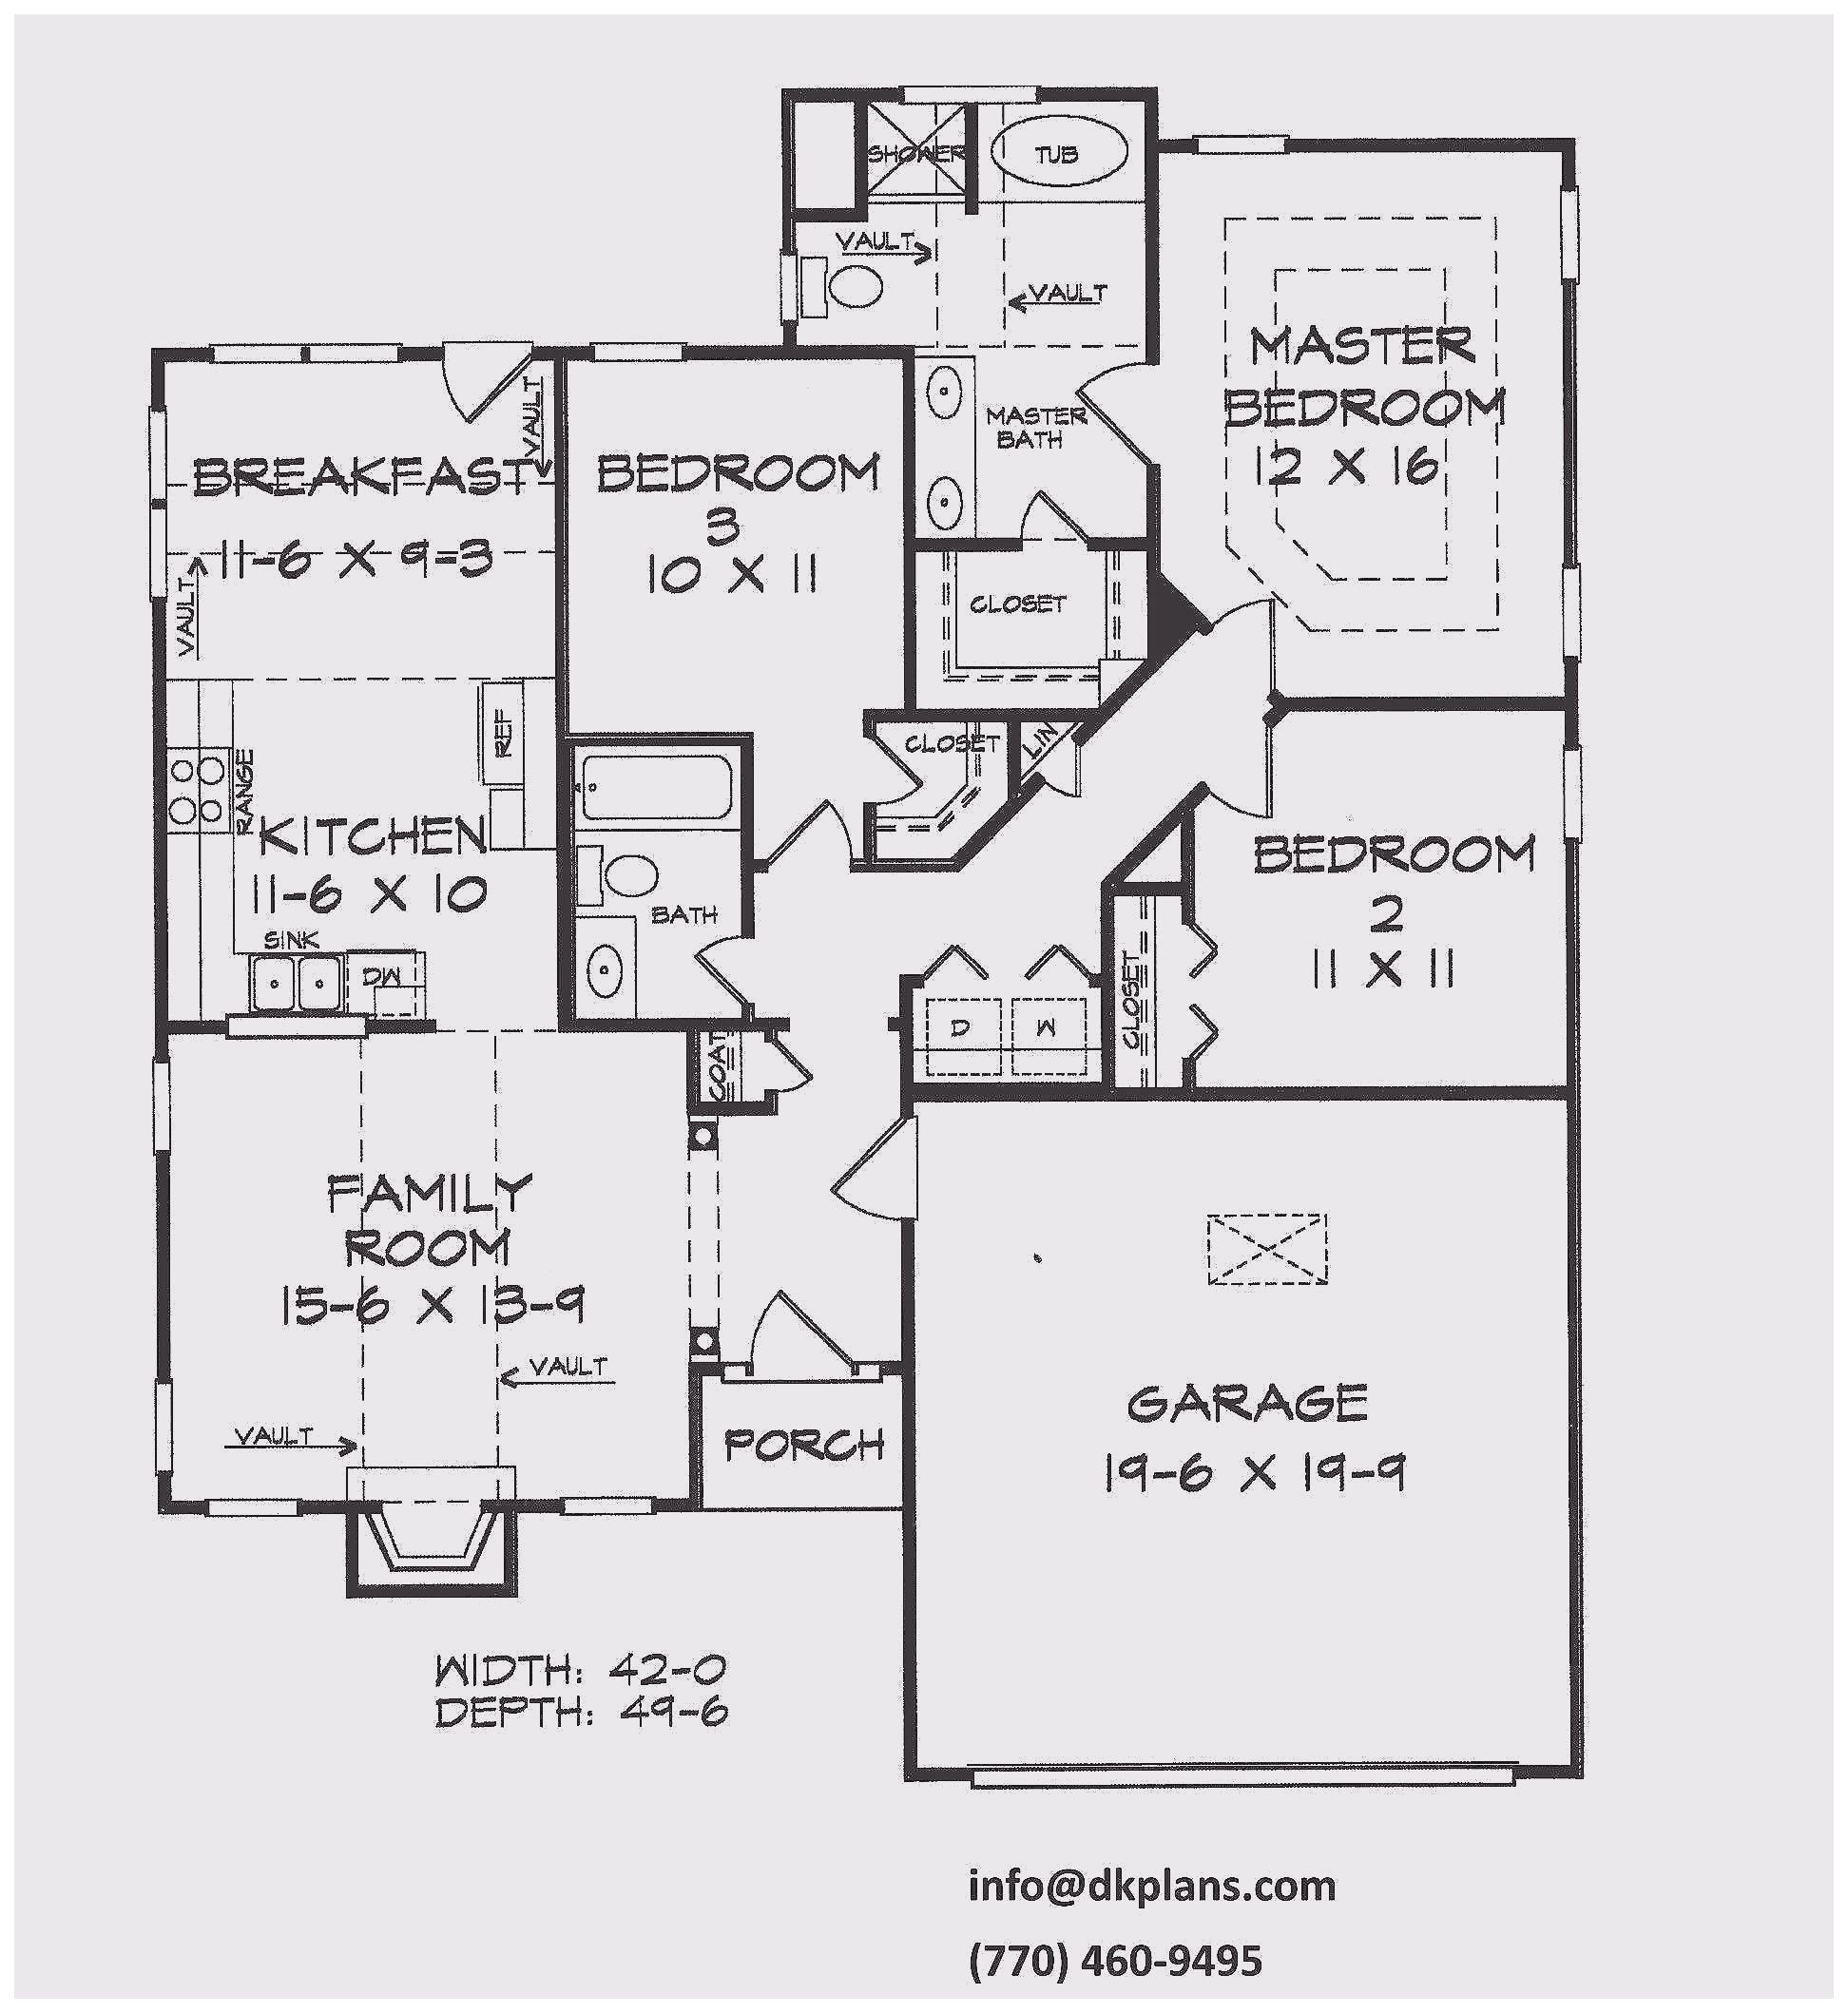 New Home Plans Of Homeplans